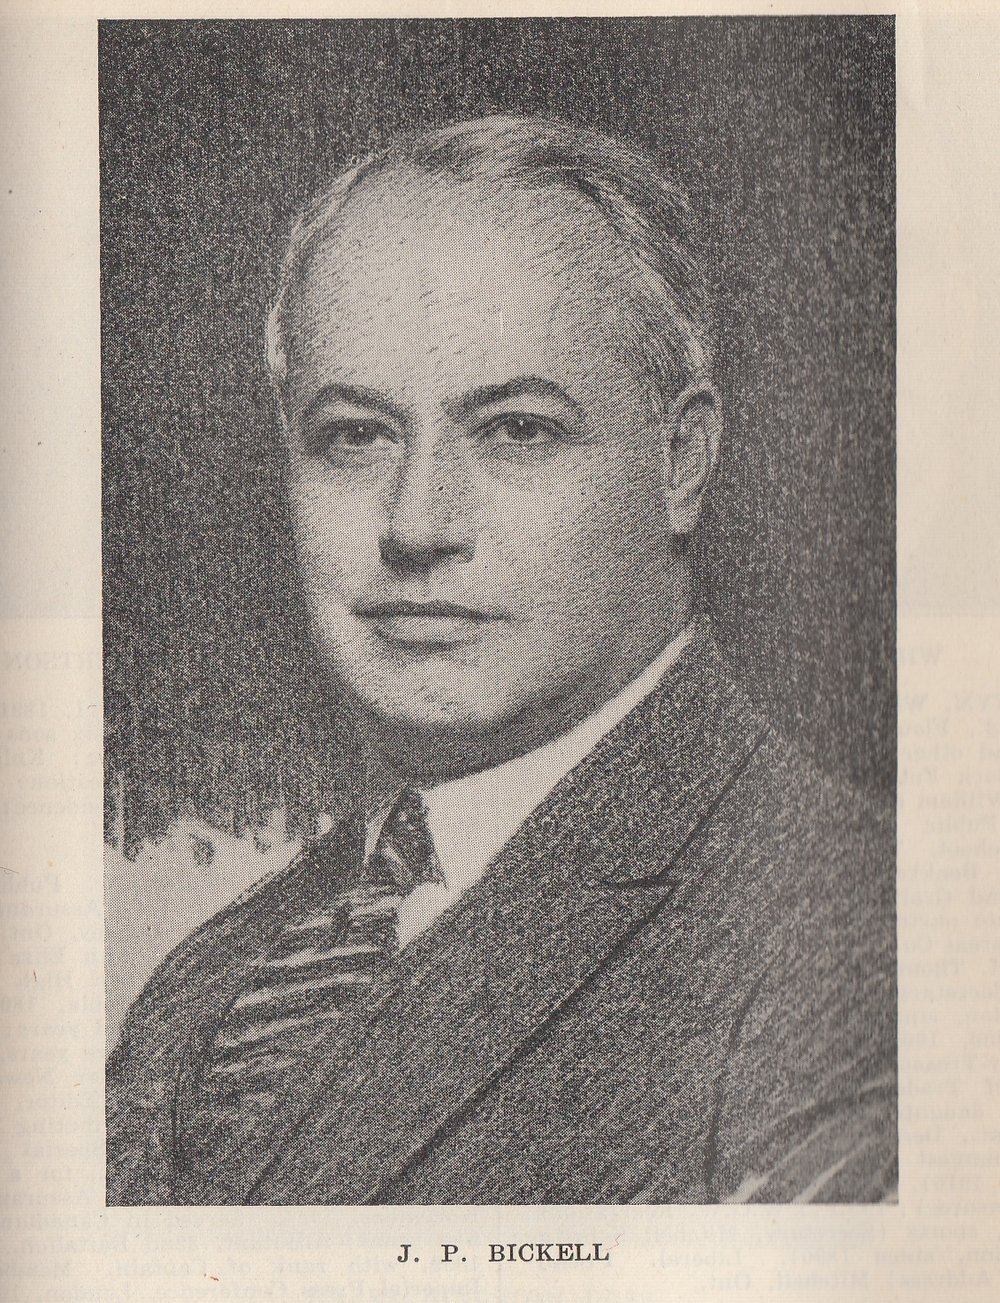 Portrait of J.P. Bickell, by Joshua Smith, 1927